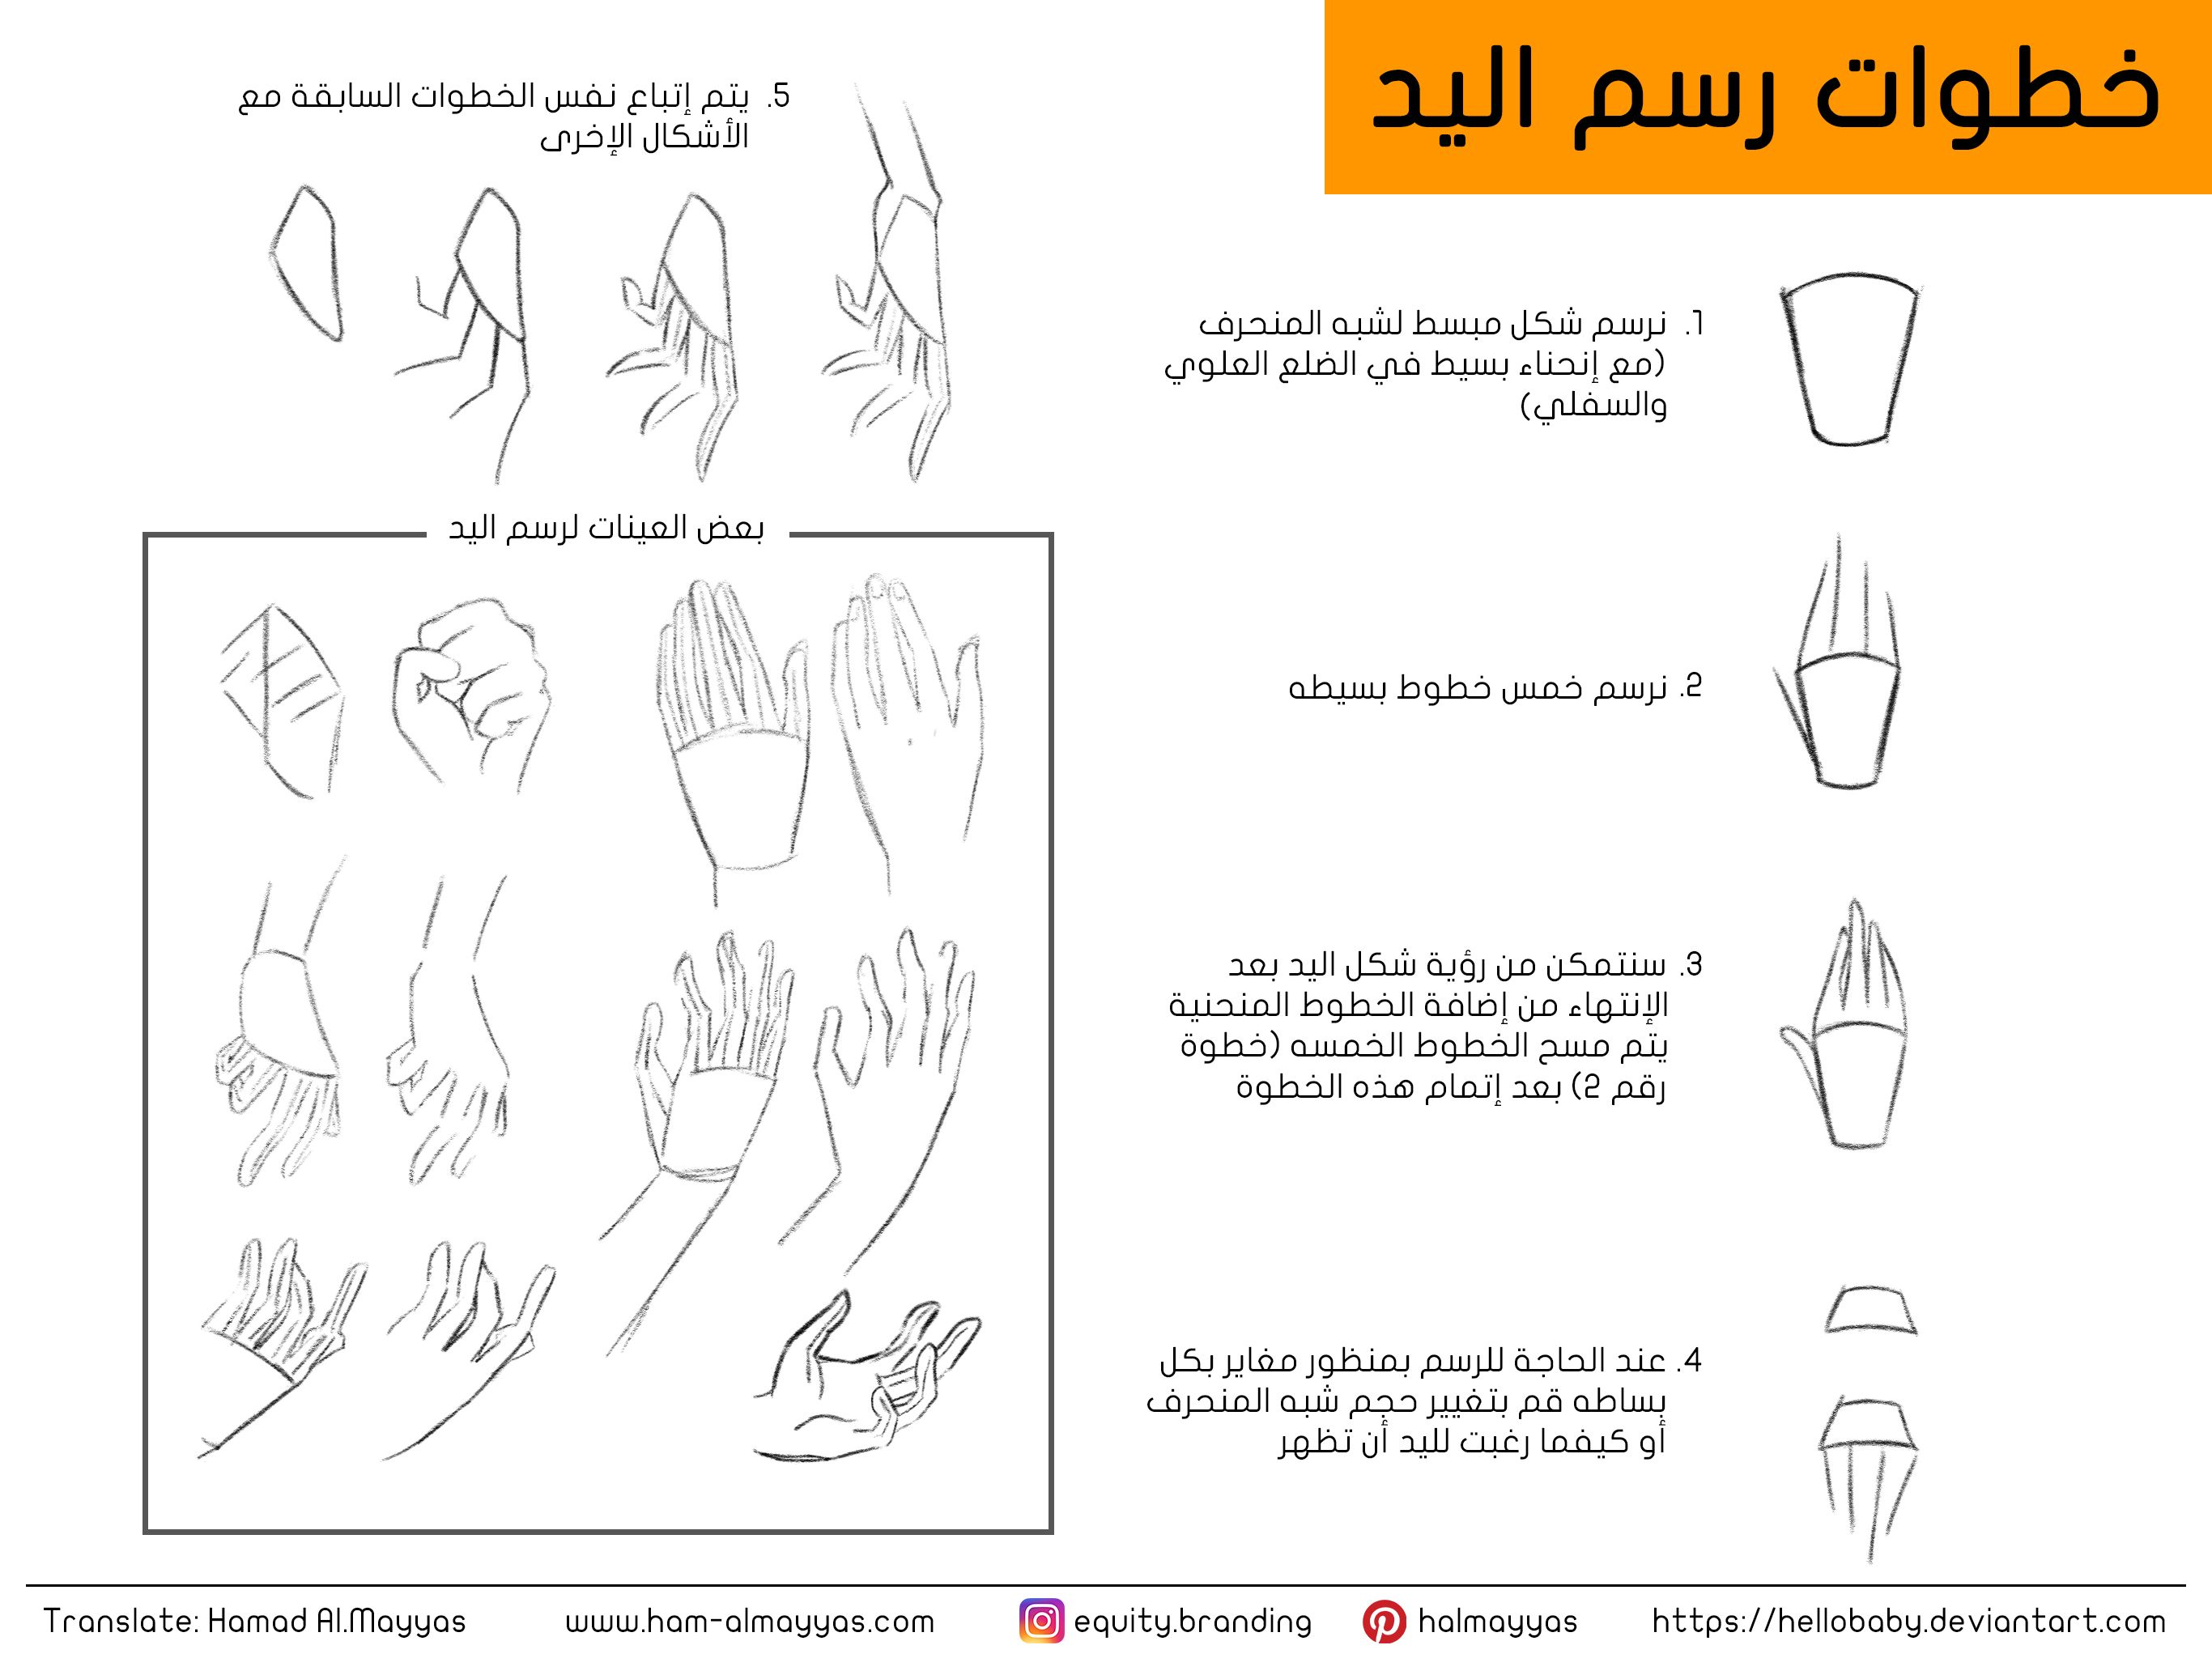 خطوات رسم اليد رسم درس يد مرجع تعليم مراجع دروس Reference Tutorial Hand Drawing Art Handdraw Photo Collage Template Collage Template Photo Collage